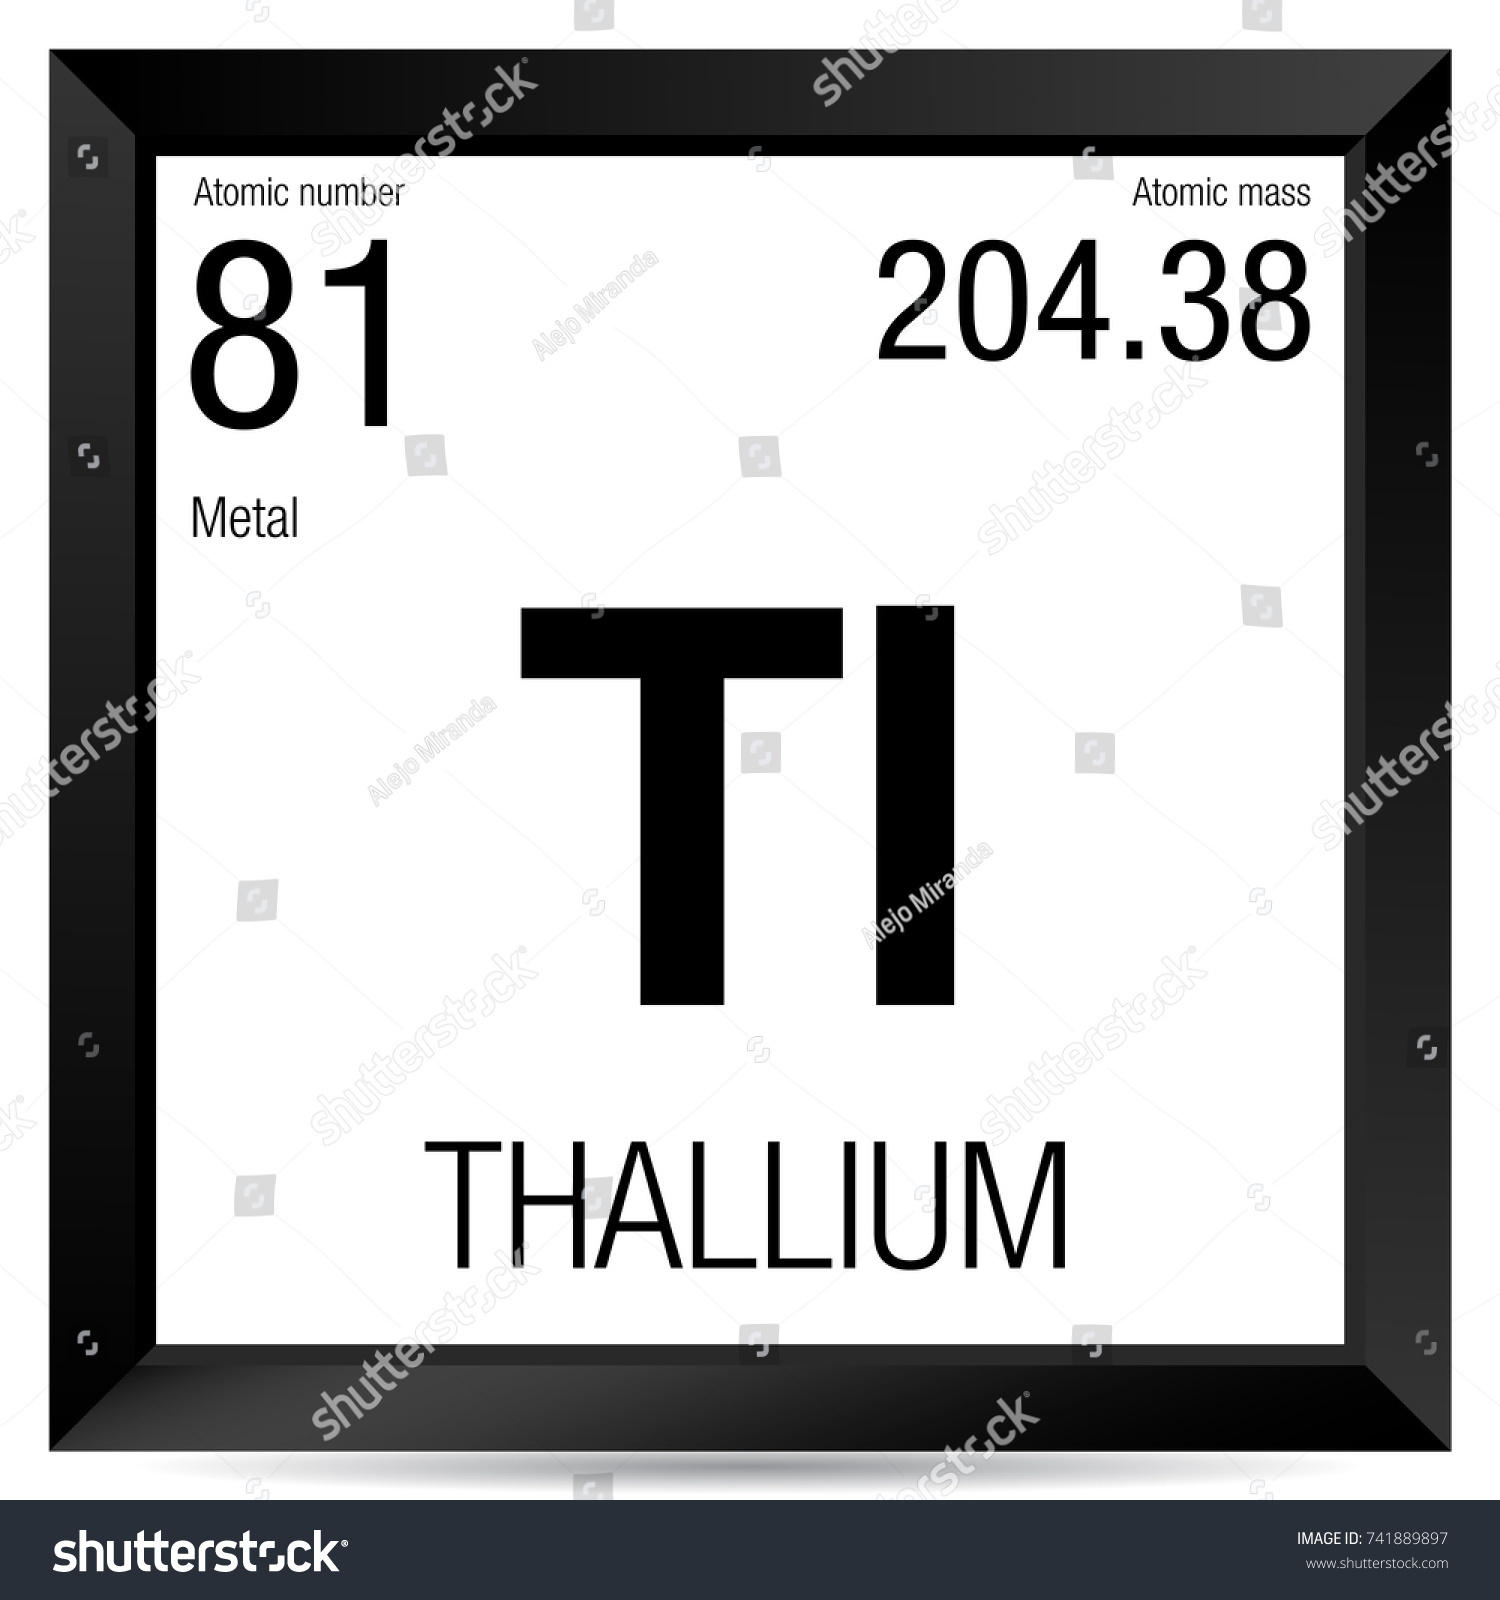 Tl on the periodic table gallery periodic table images element tl periodic table images periodic table images atomic number 81 periodic table images periodic table gamestrikefo Images